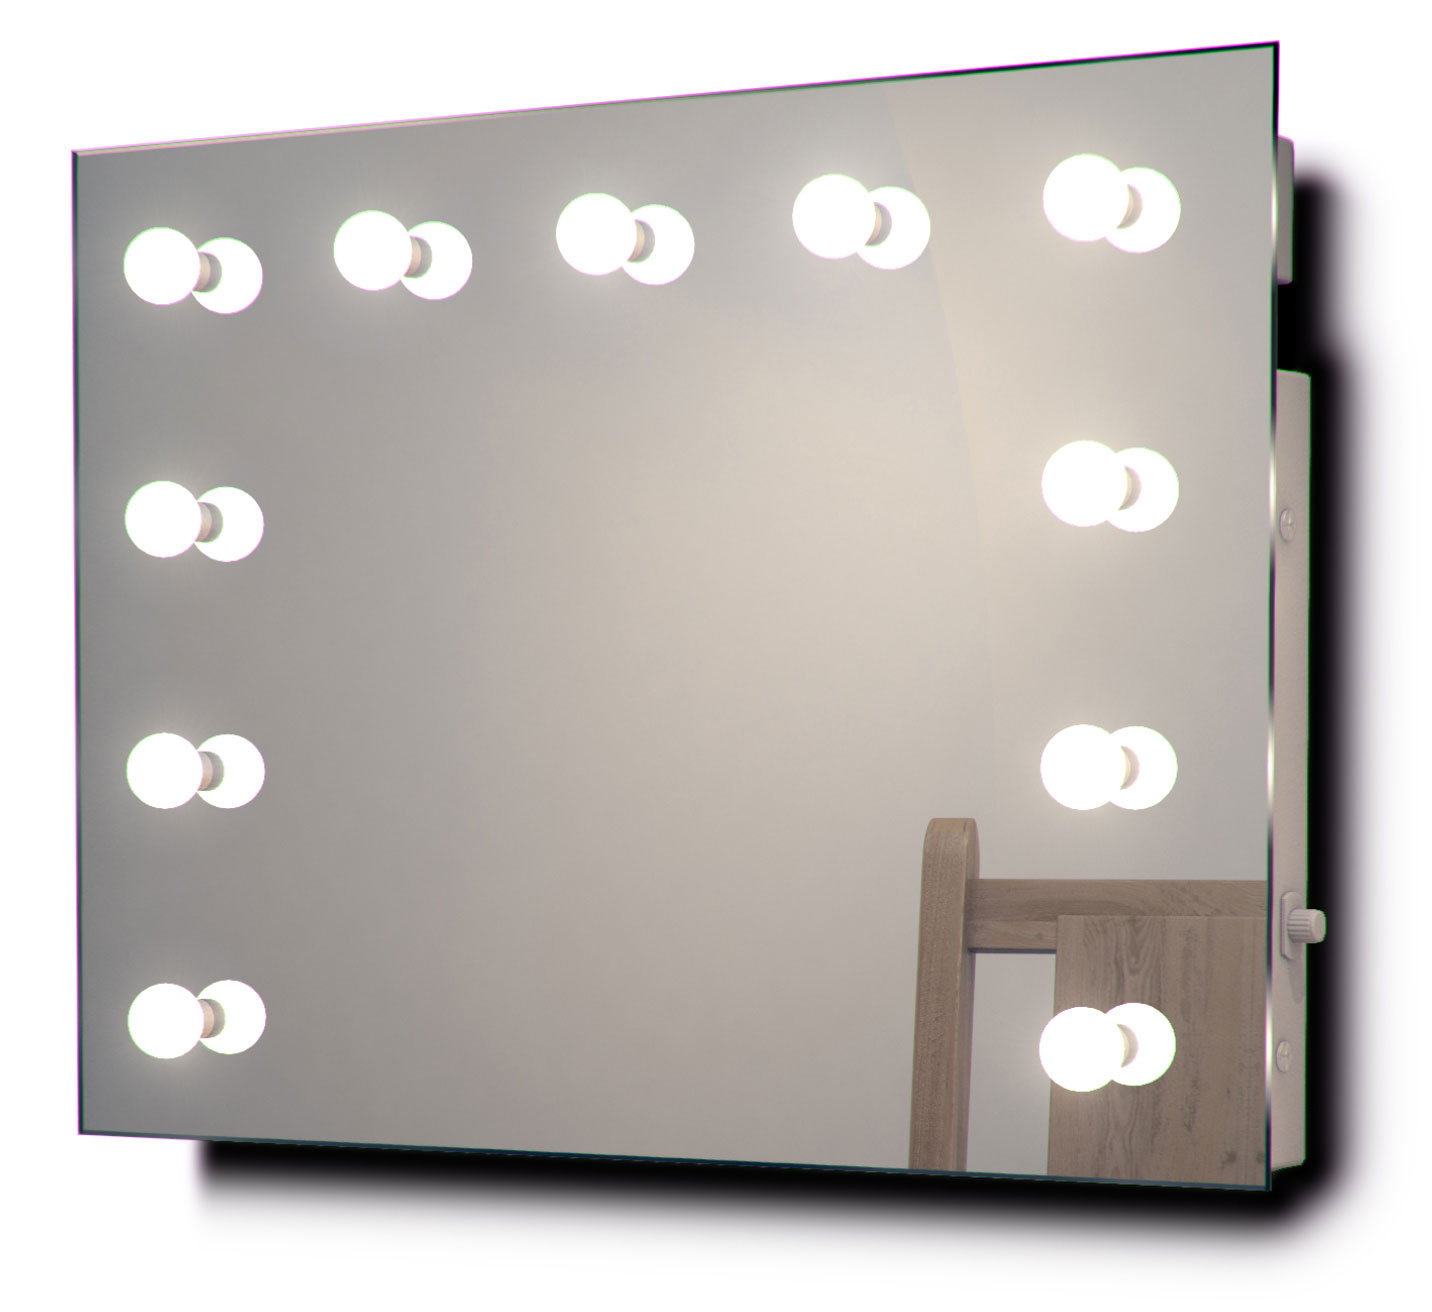 miroir de maquillage hollywood vestiaire avec lampes led. Black Bedroom Furniture Sets. Home Design Ideas